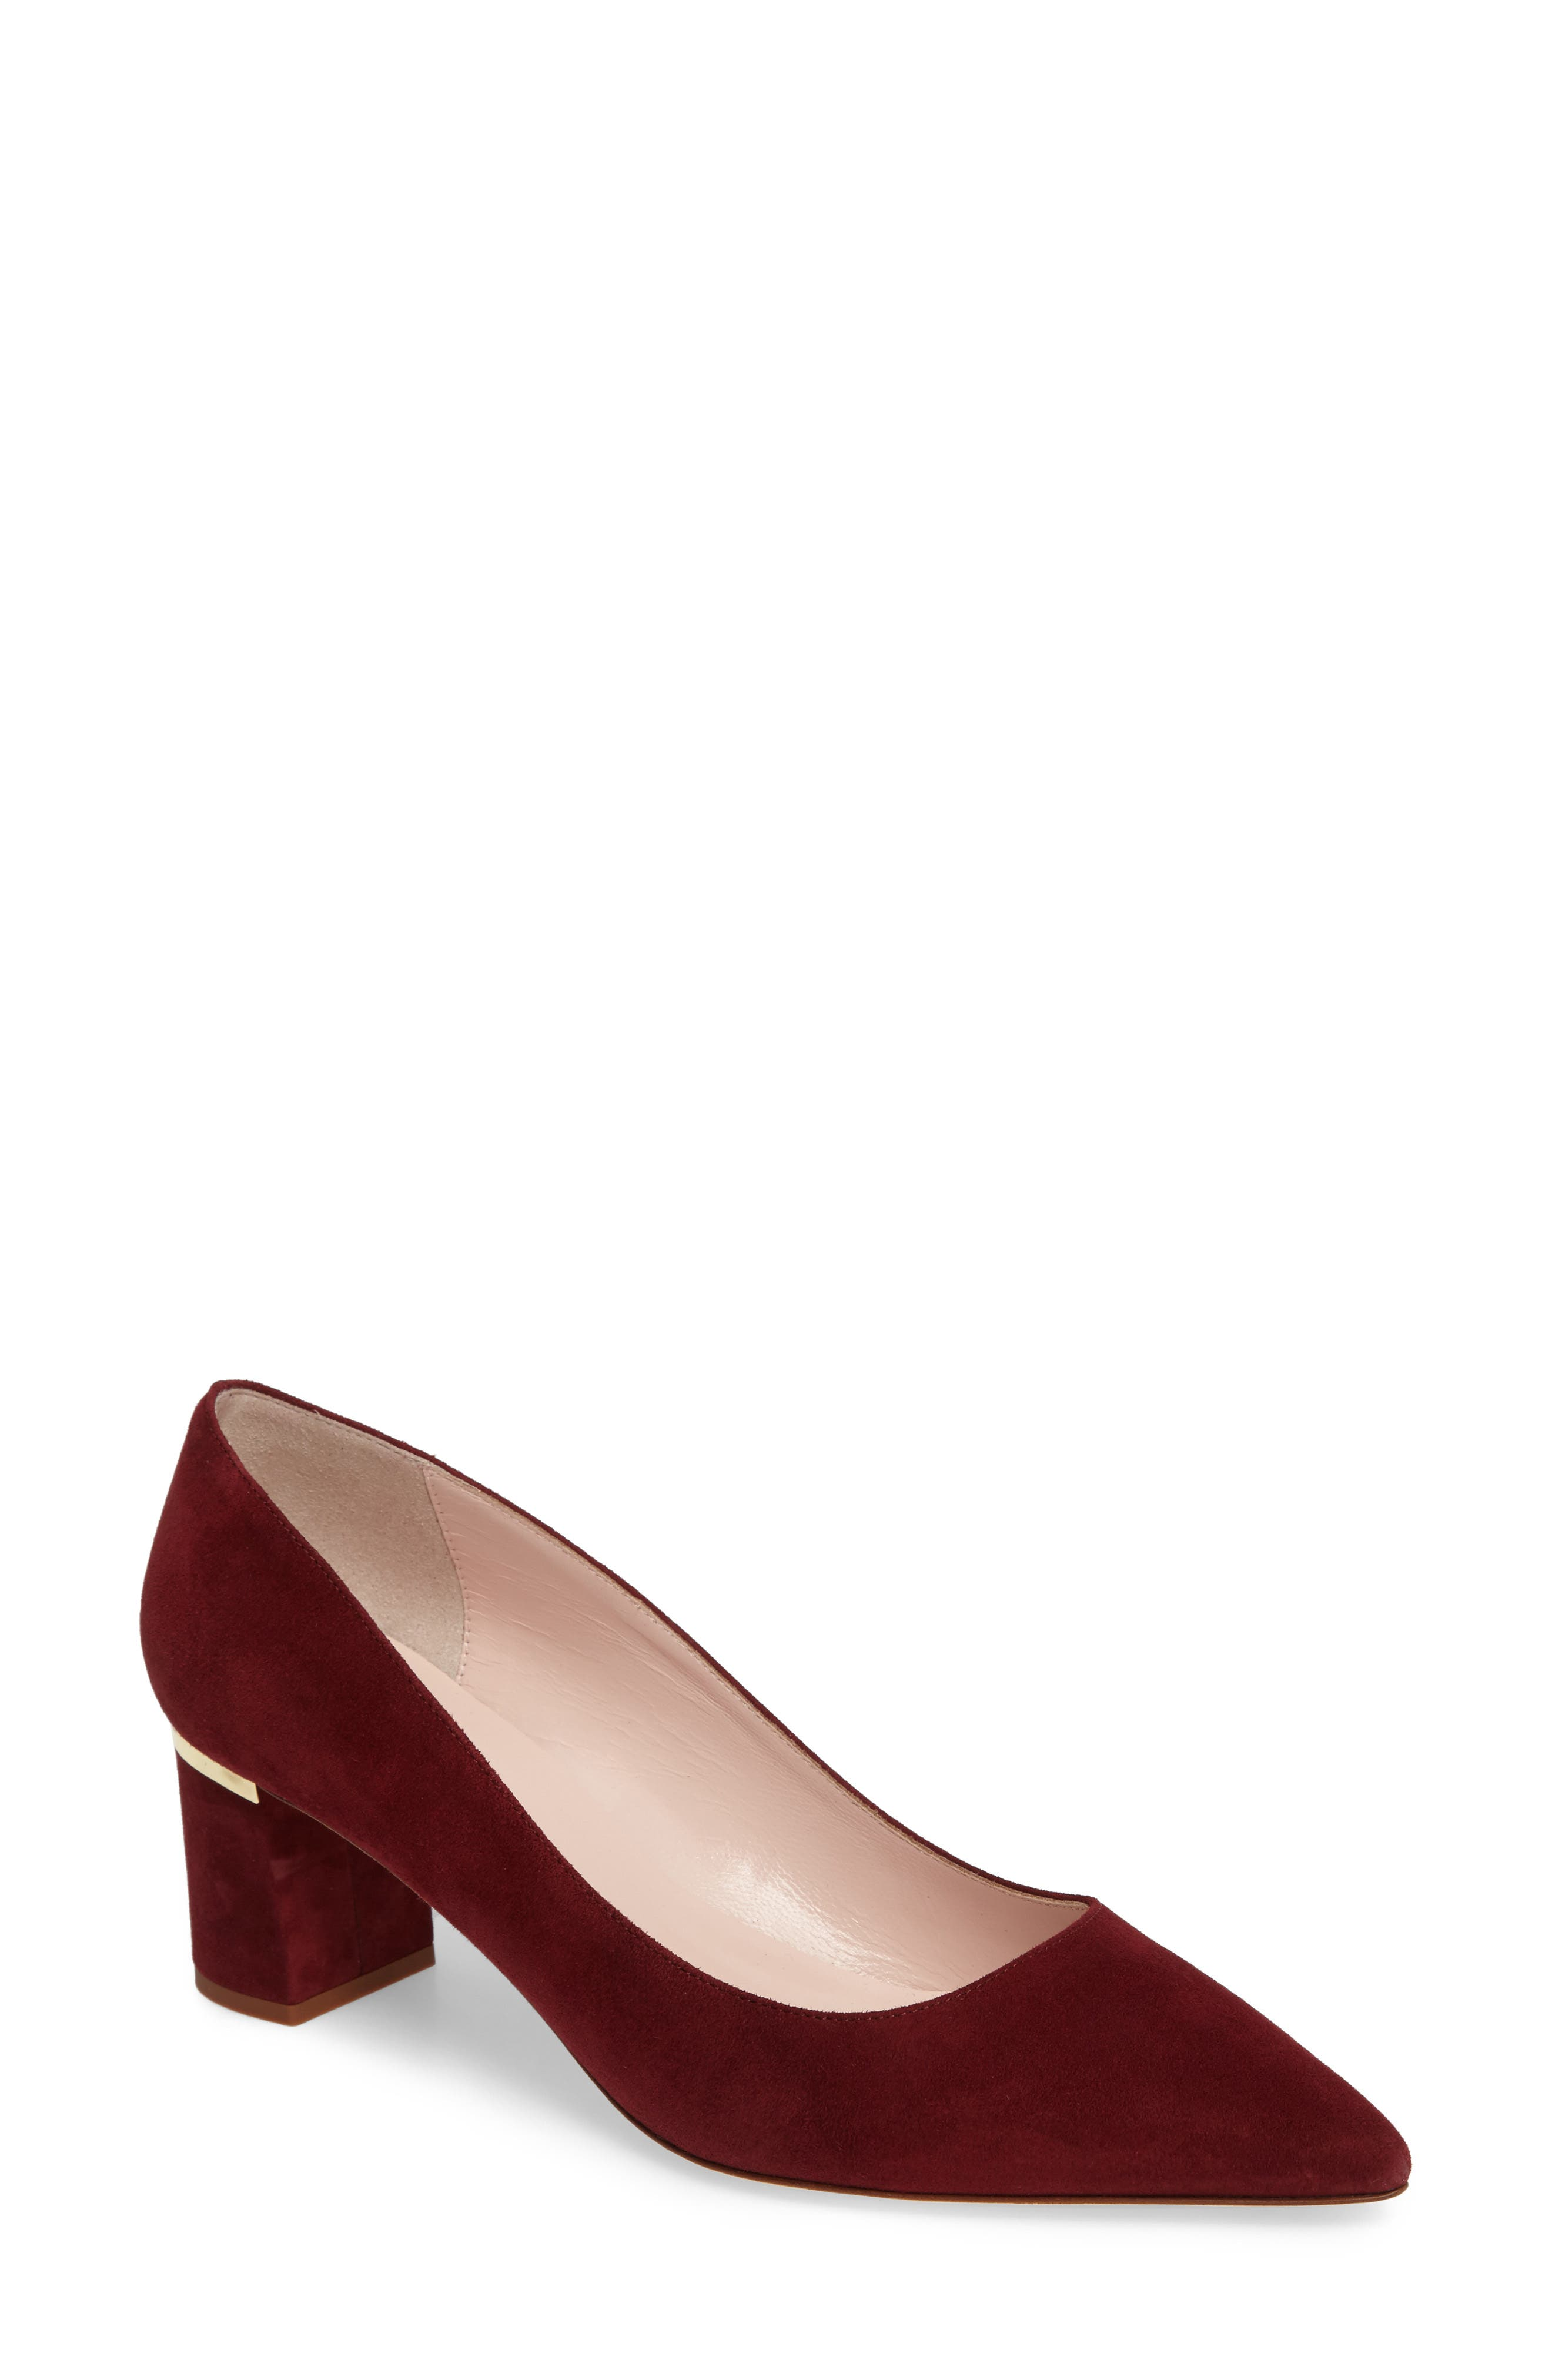 'milan too' pointy toe pump,                         Main,                         color, 620